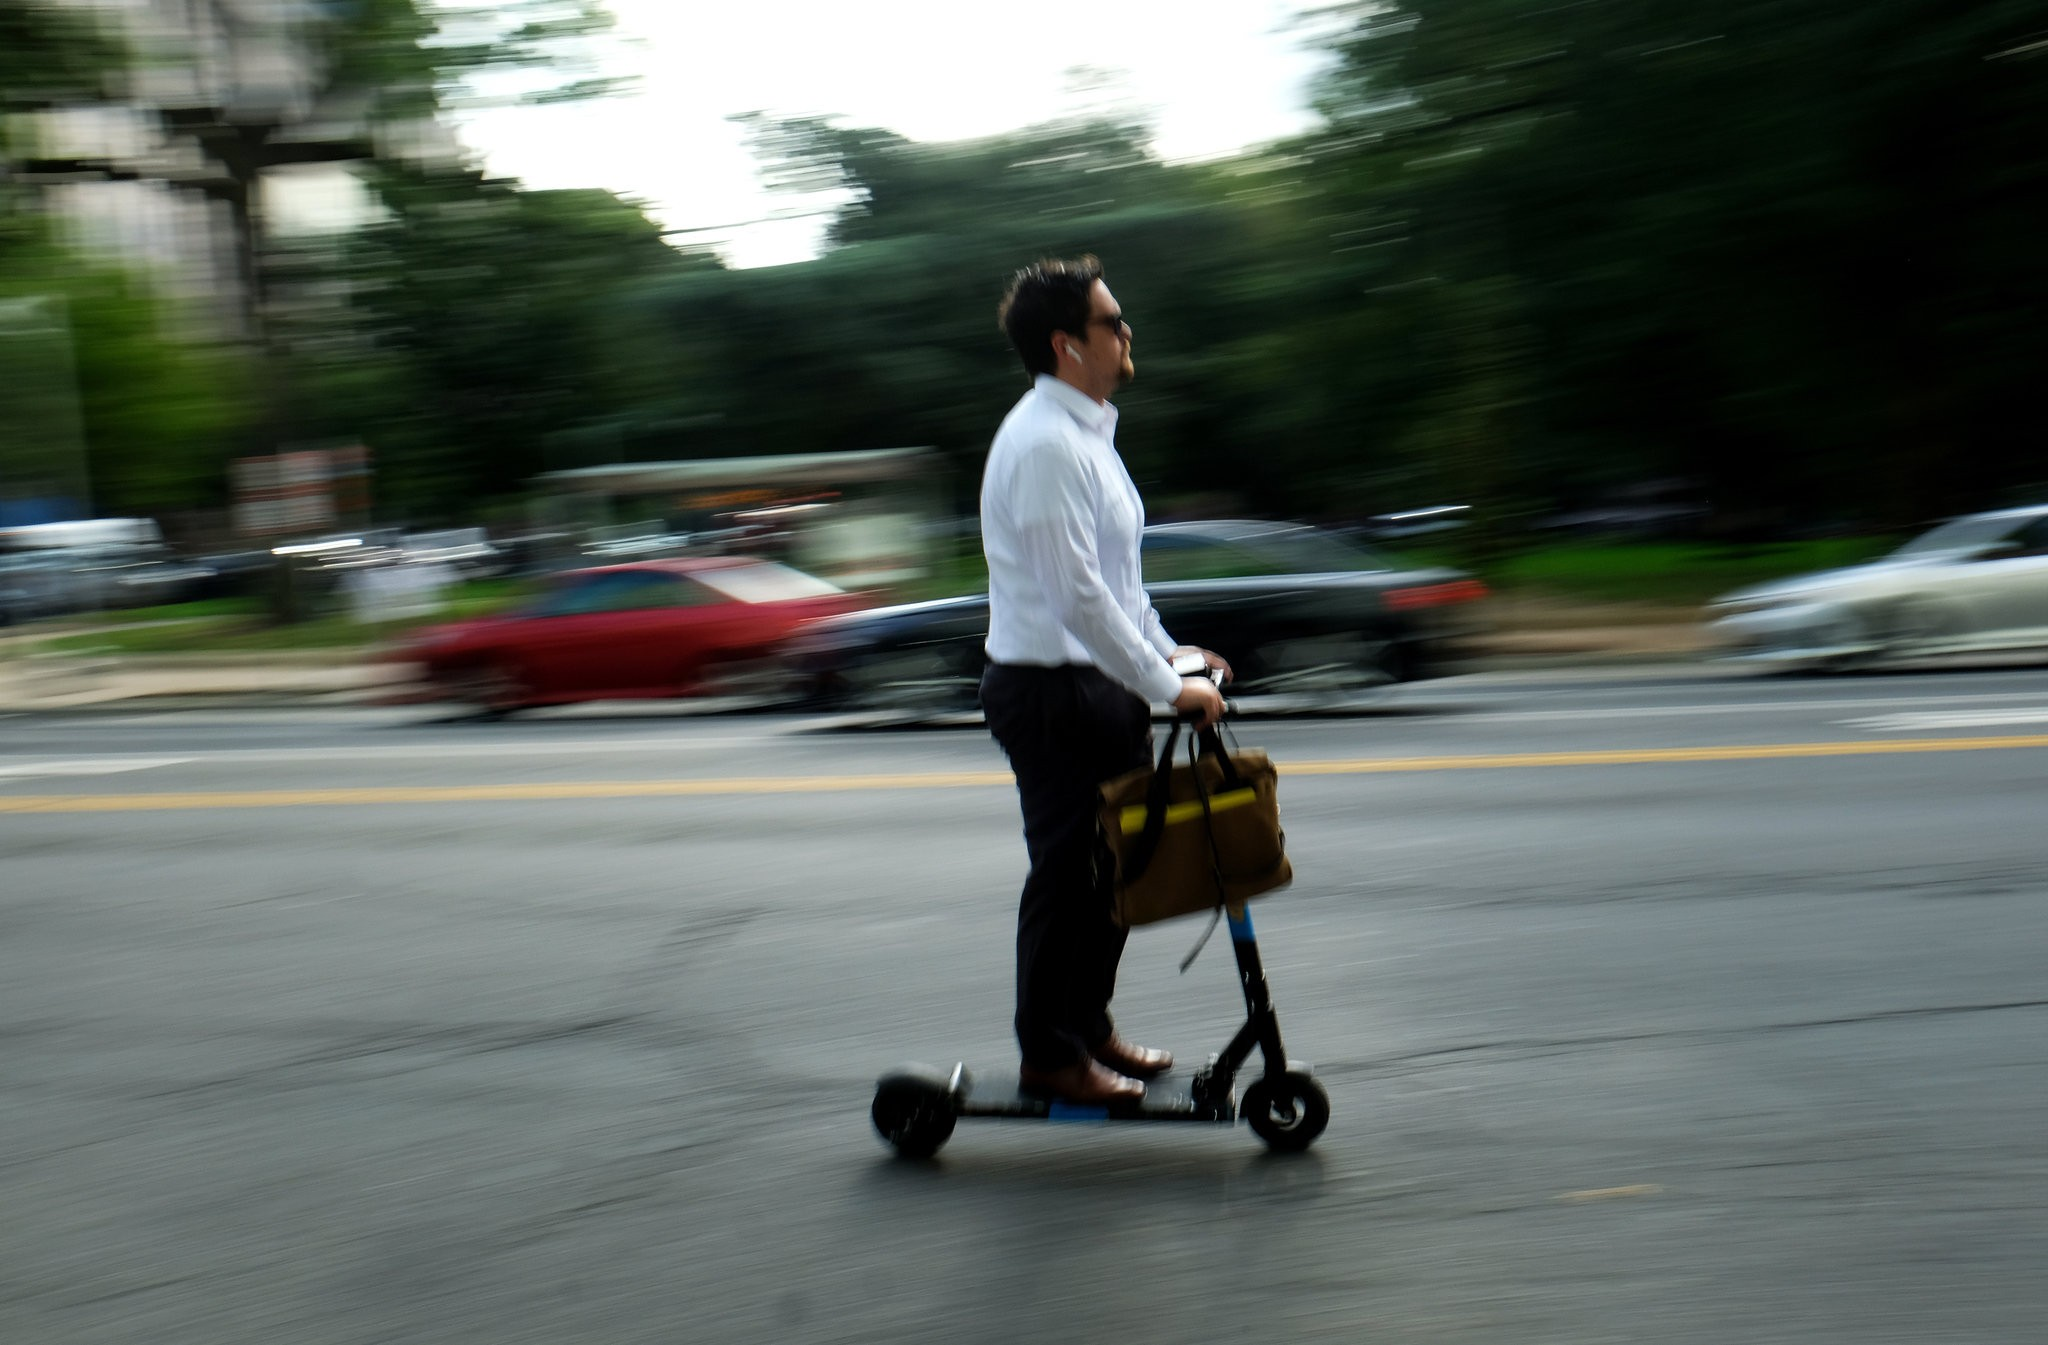 Injuries increase as electric scooters roll into more cities - al com